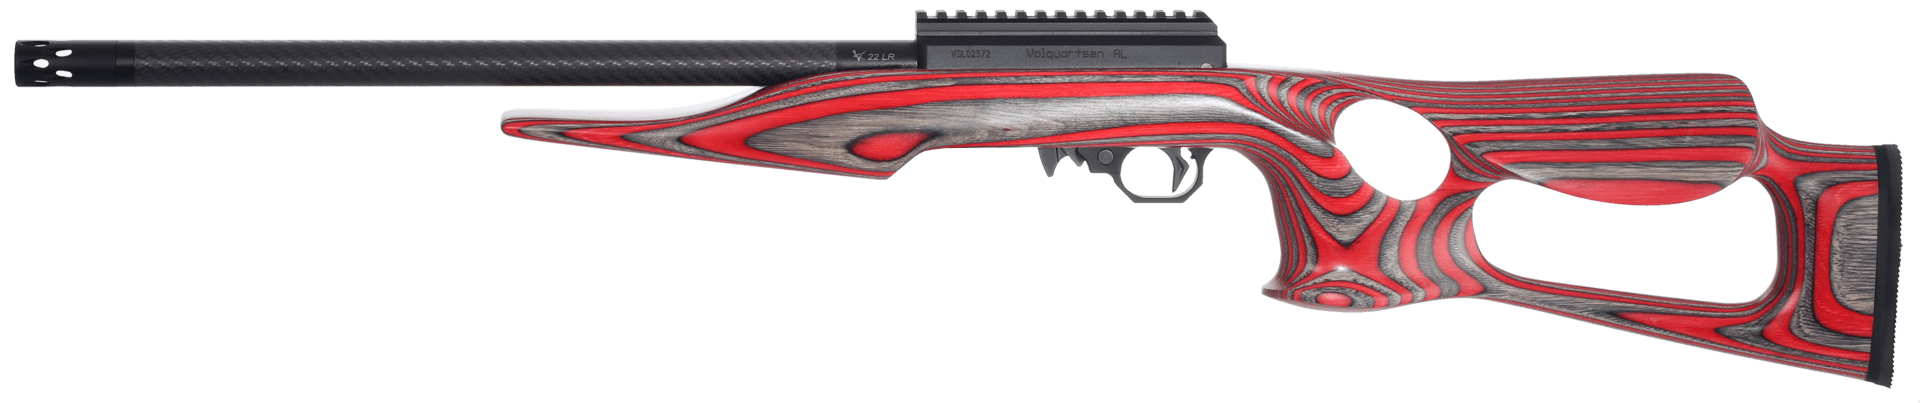 868-ultralite with red lightweight th